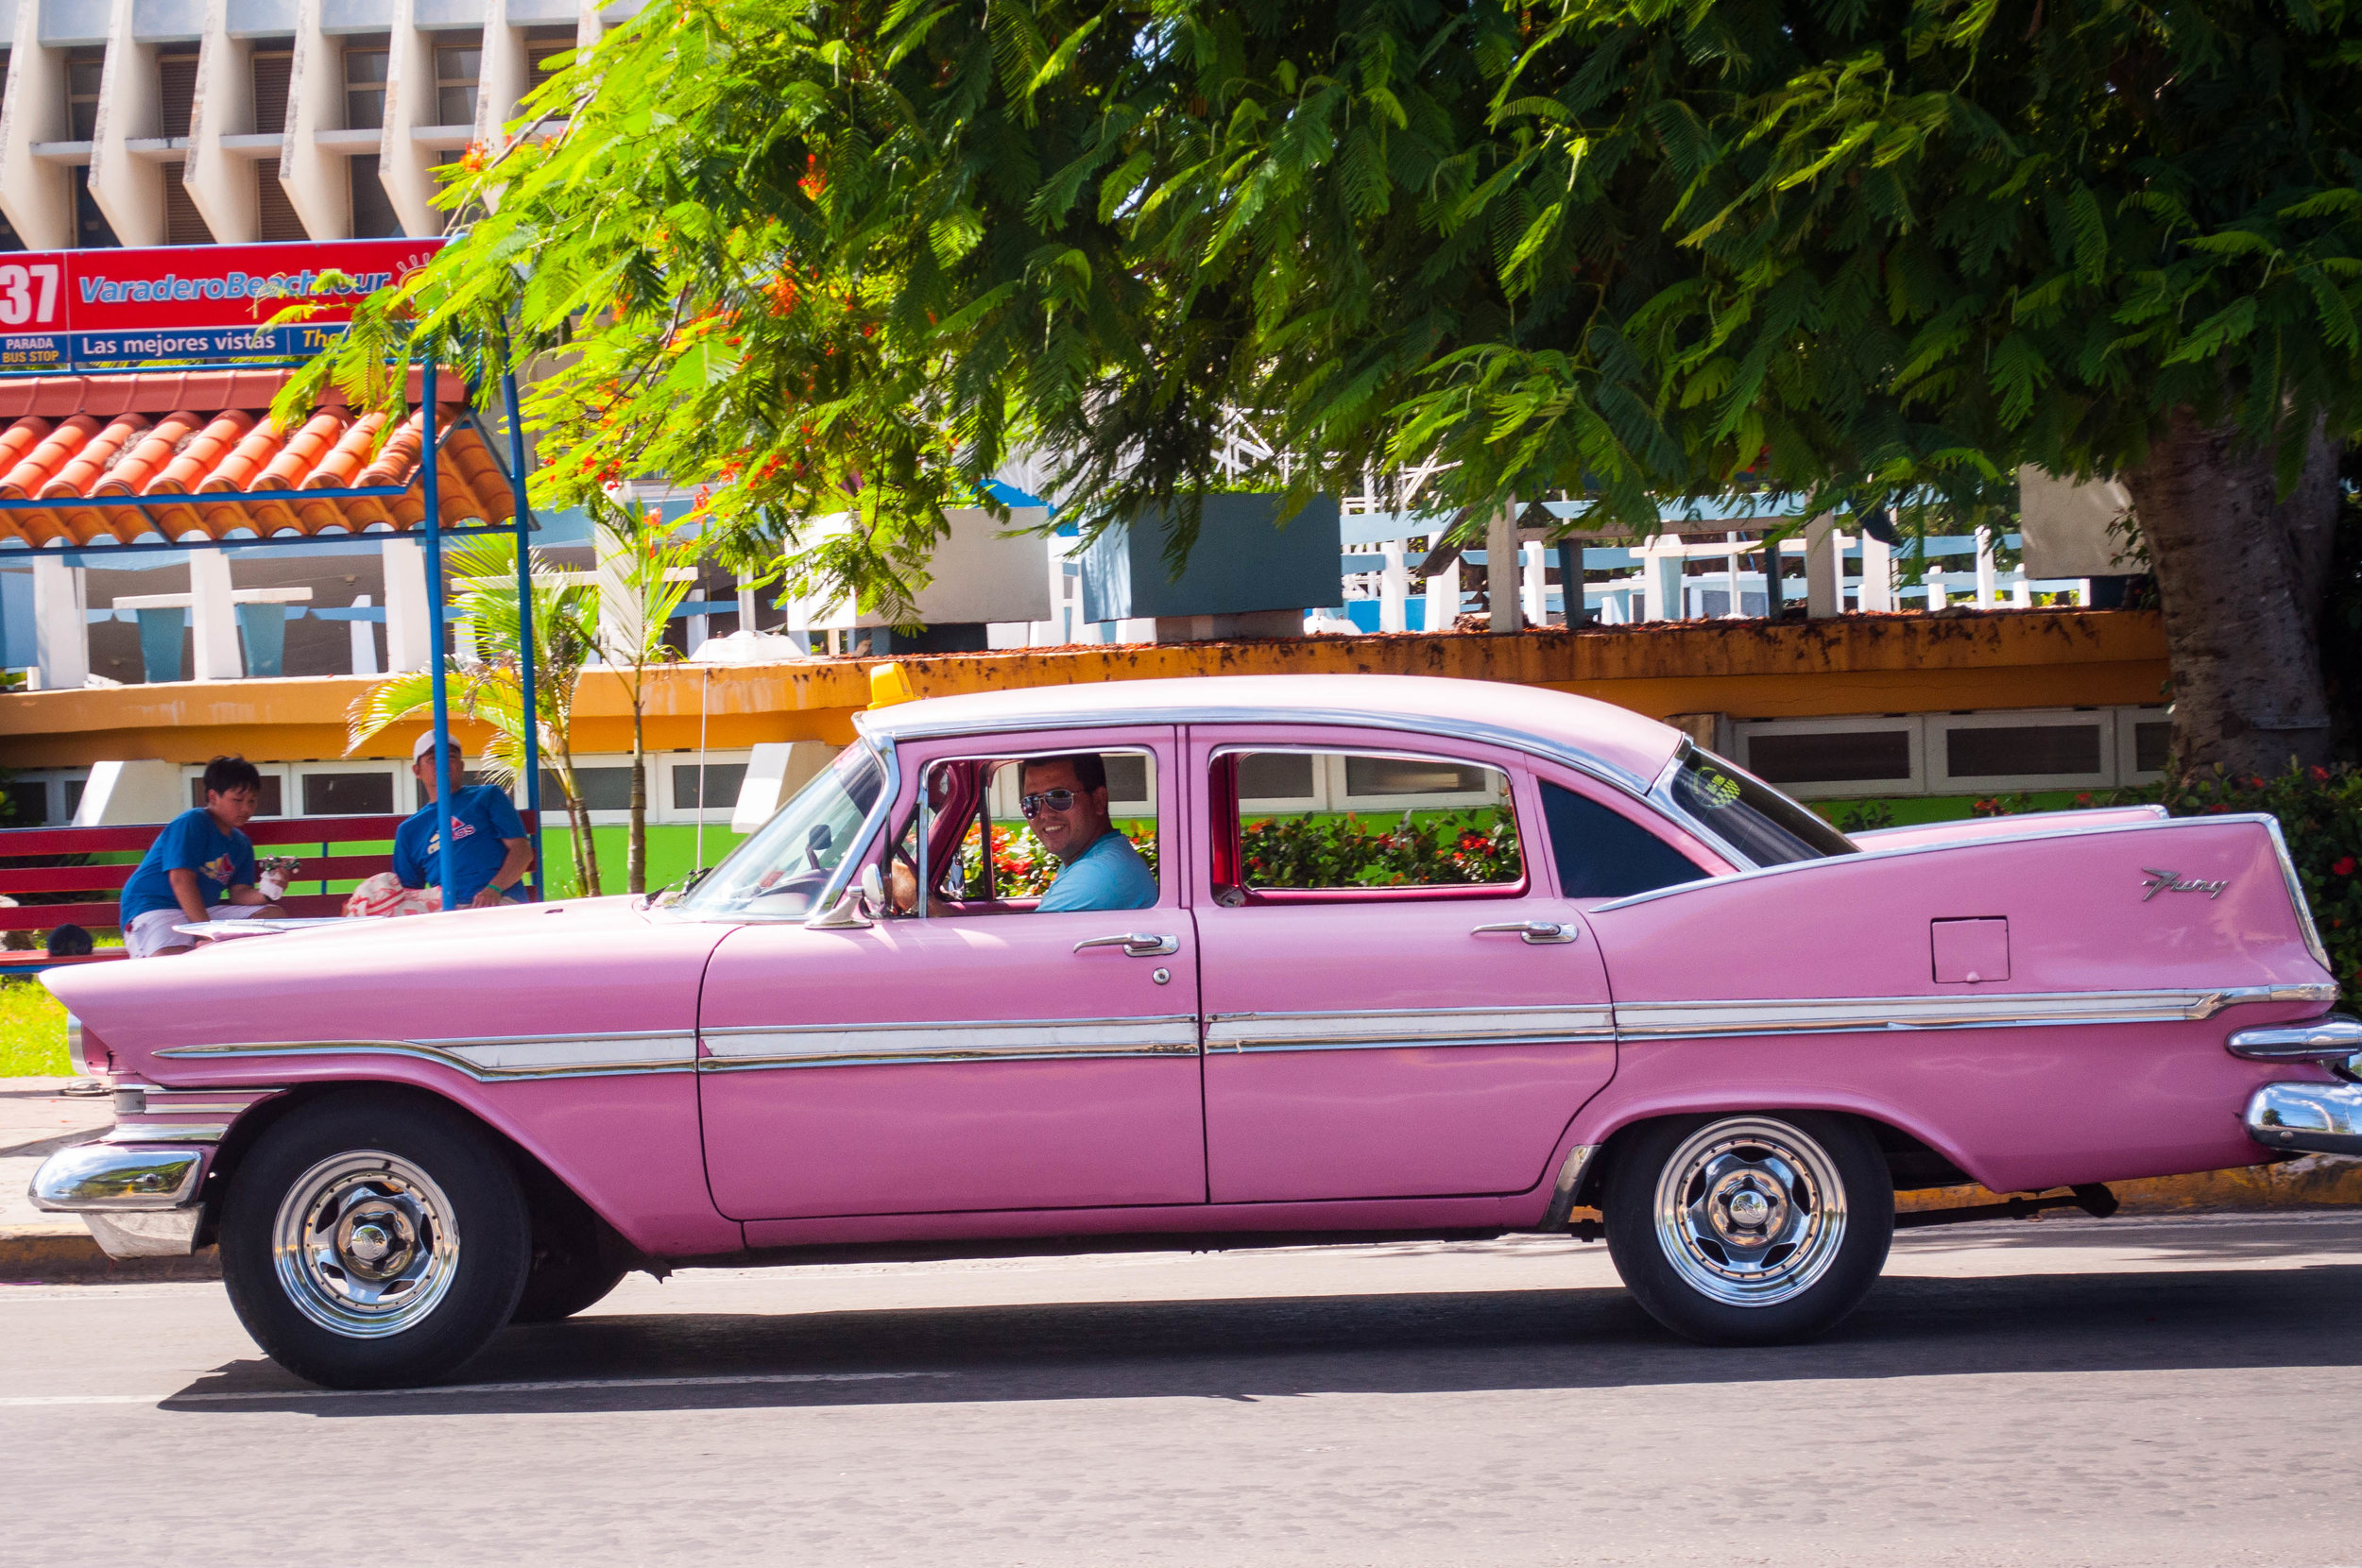 Pink vintage cars in the streets of La Havana seen during our day trip